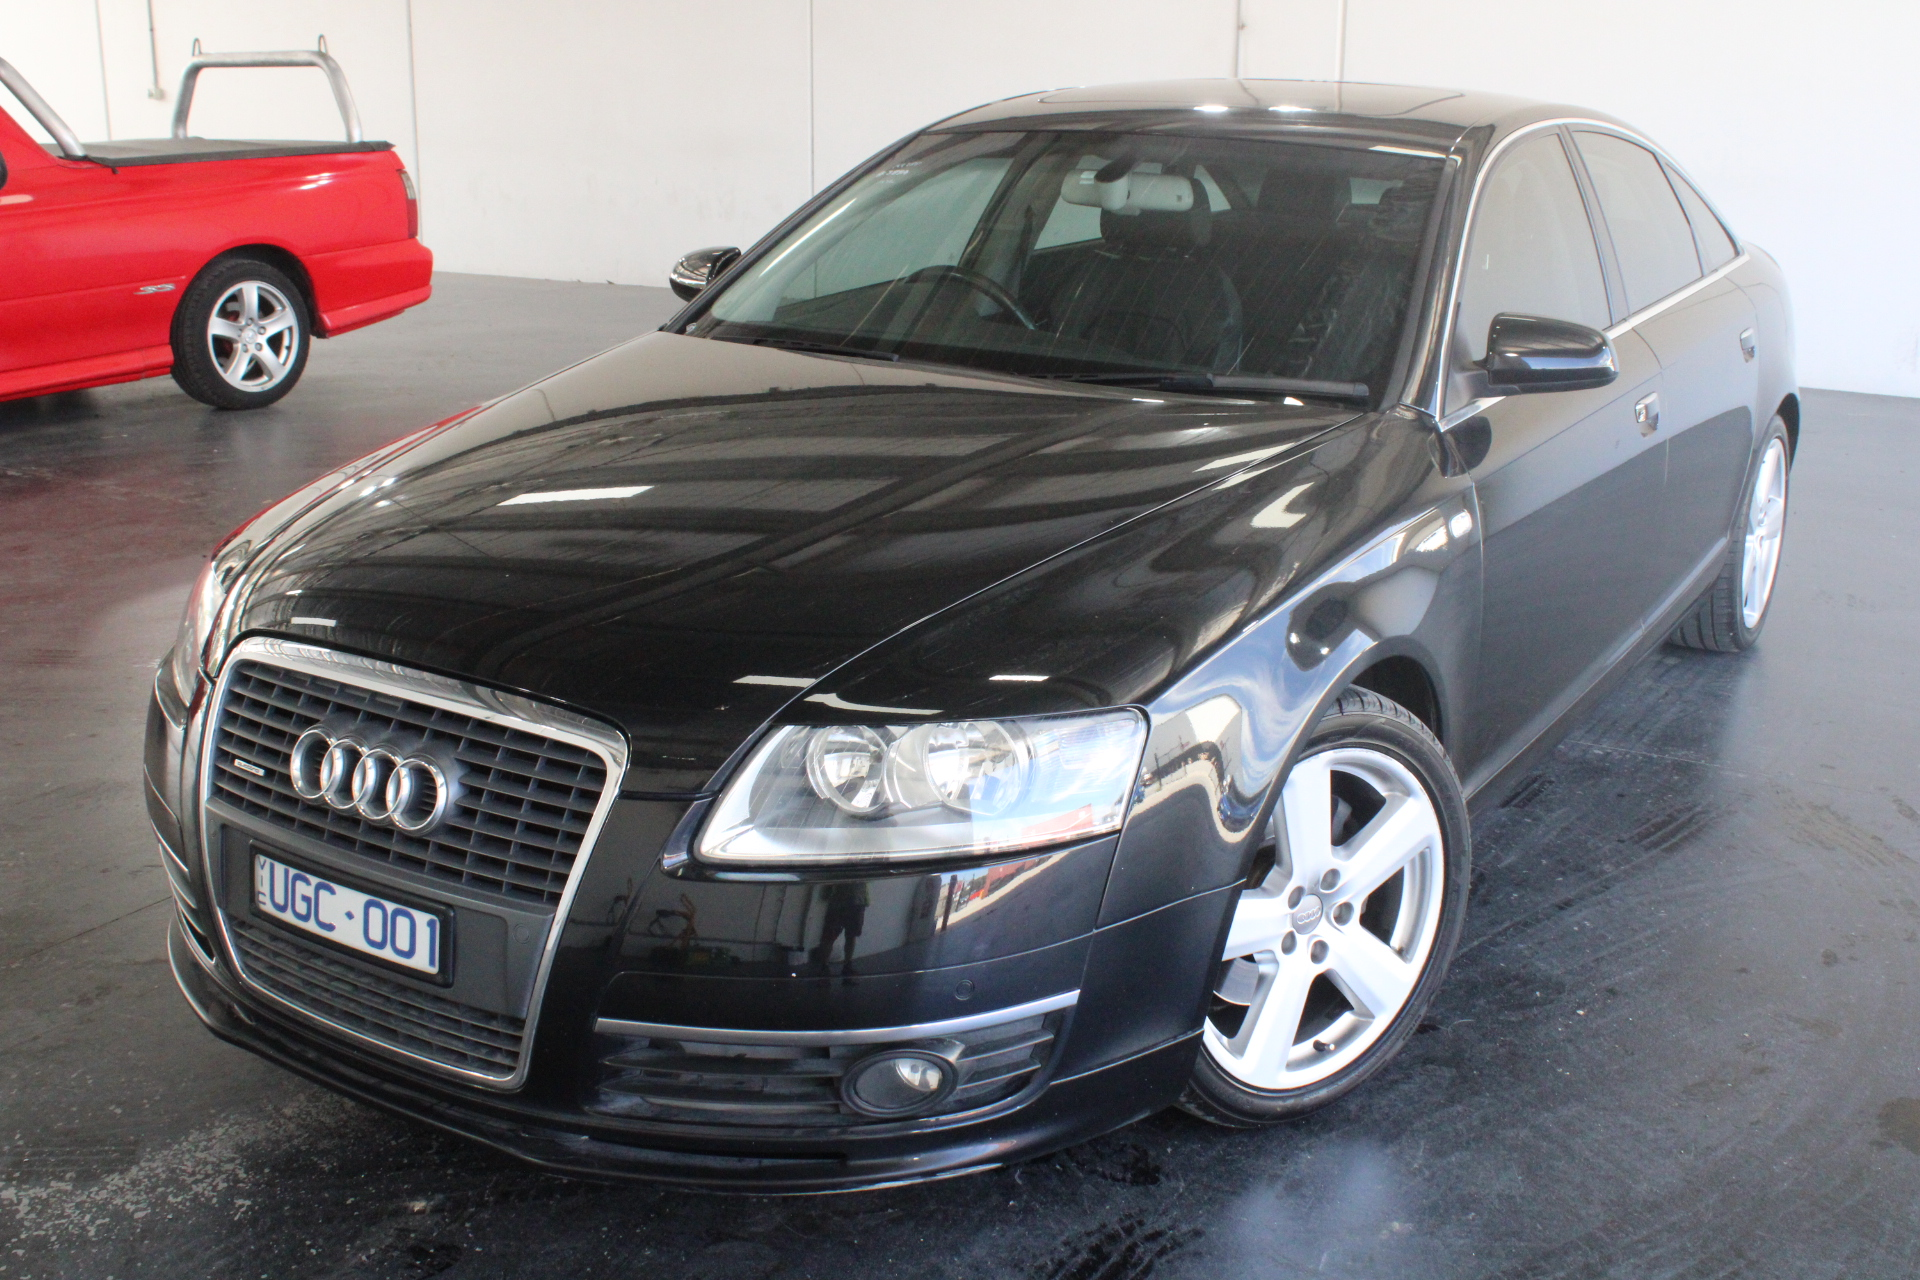 2006 Audi A6 3.0 TDi Quattro C6 T/D Auto Sedan RWC issued 08/02/2021